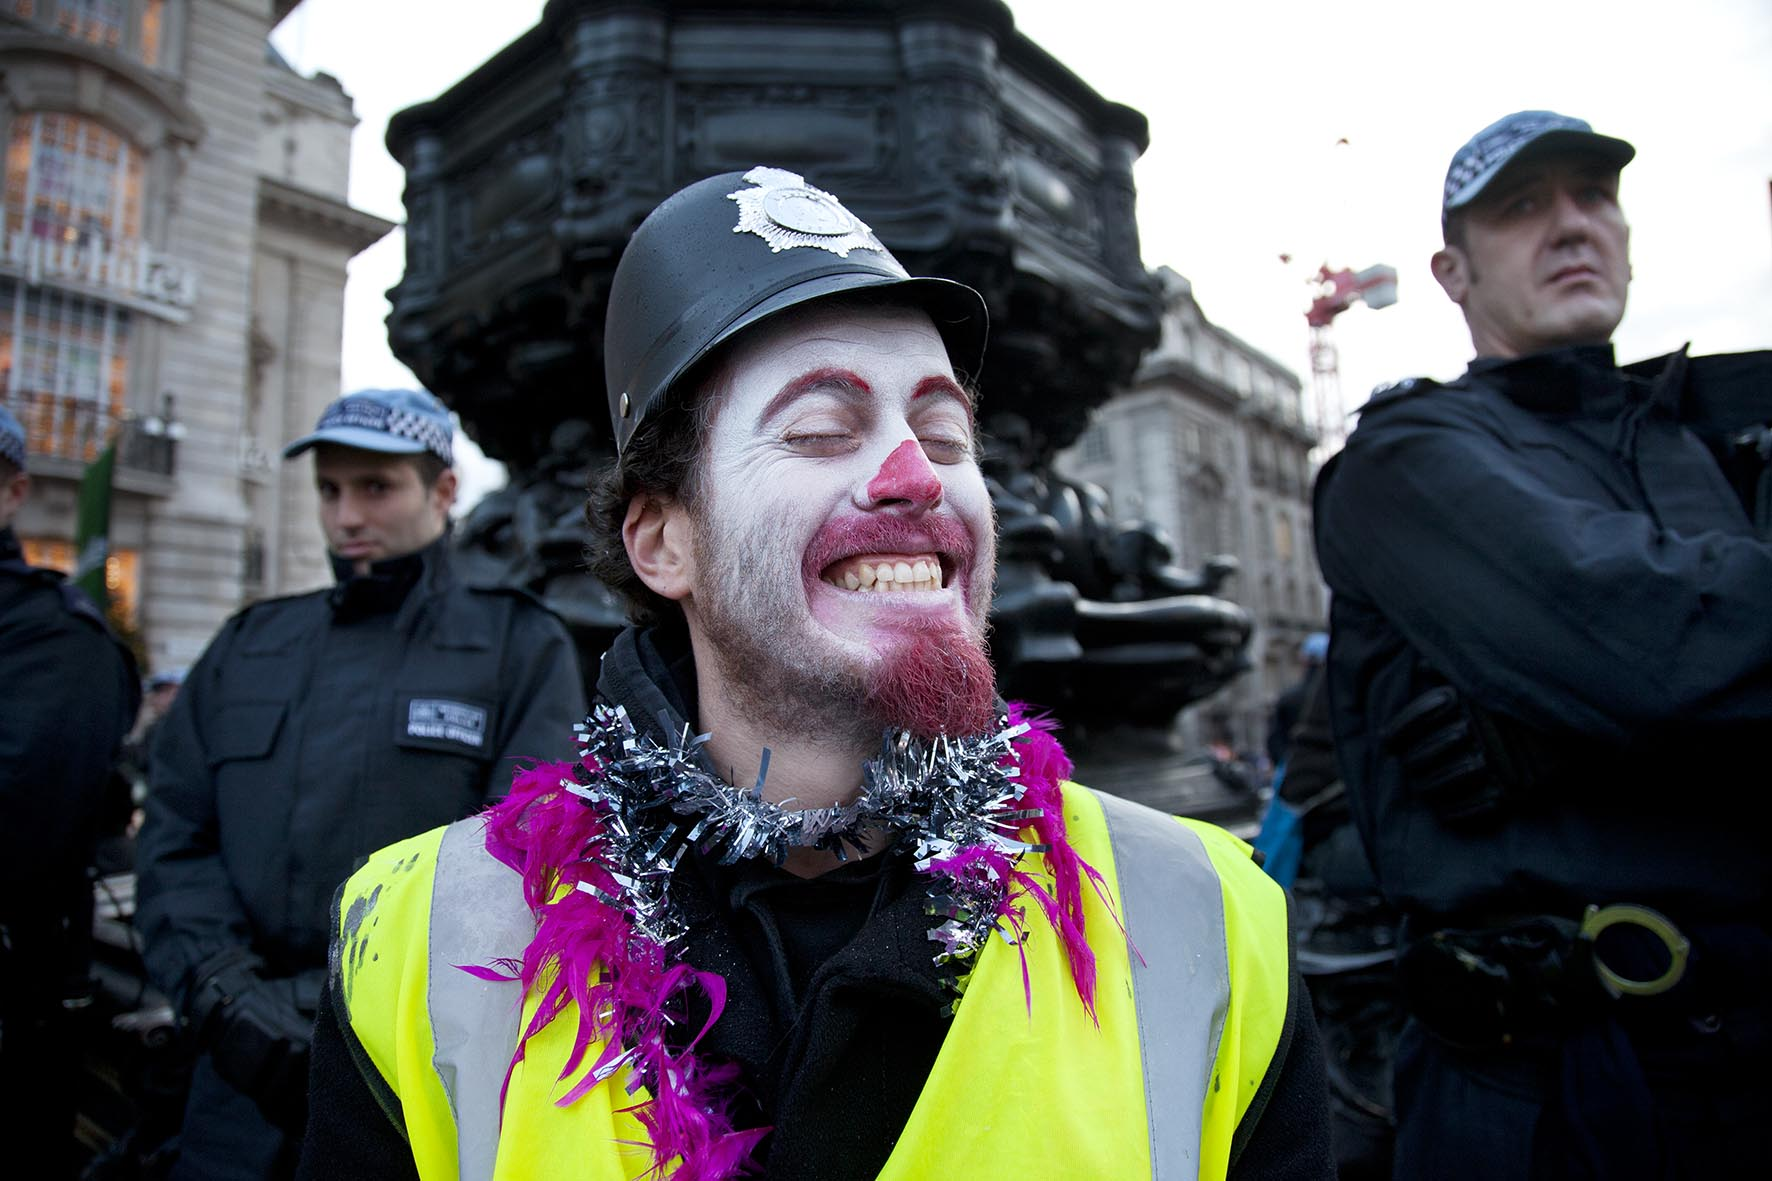 Anti-capitalist protester dressed as a police clown splits off from the main N30 protest and demonstrated at Piccadiully Circus.